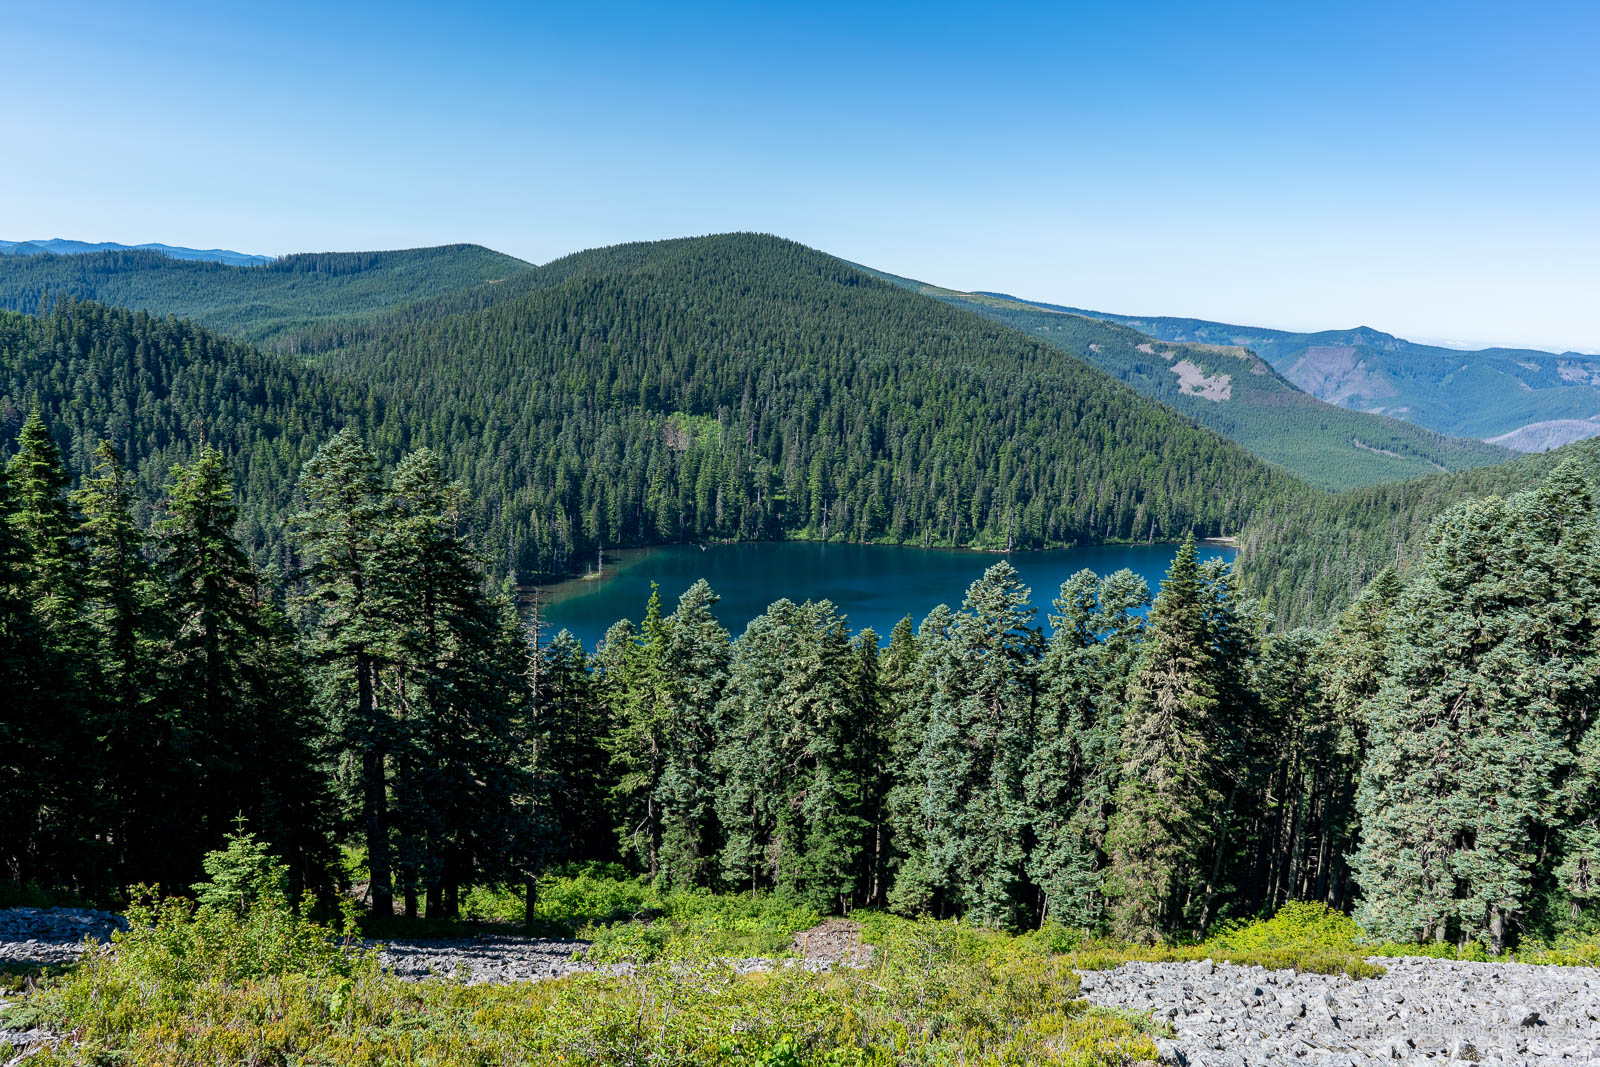 Wahtum Lake - Tomlike Mountain hike